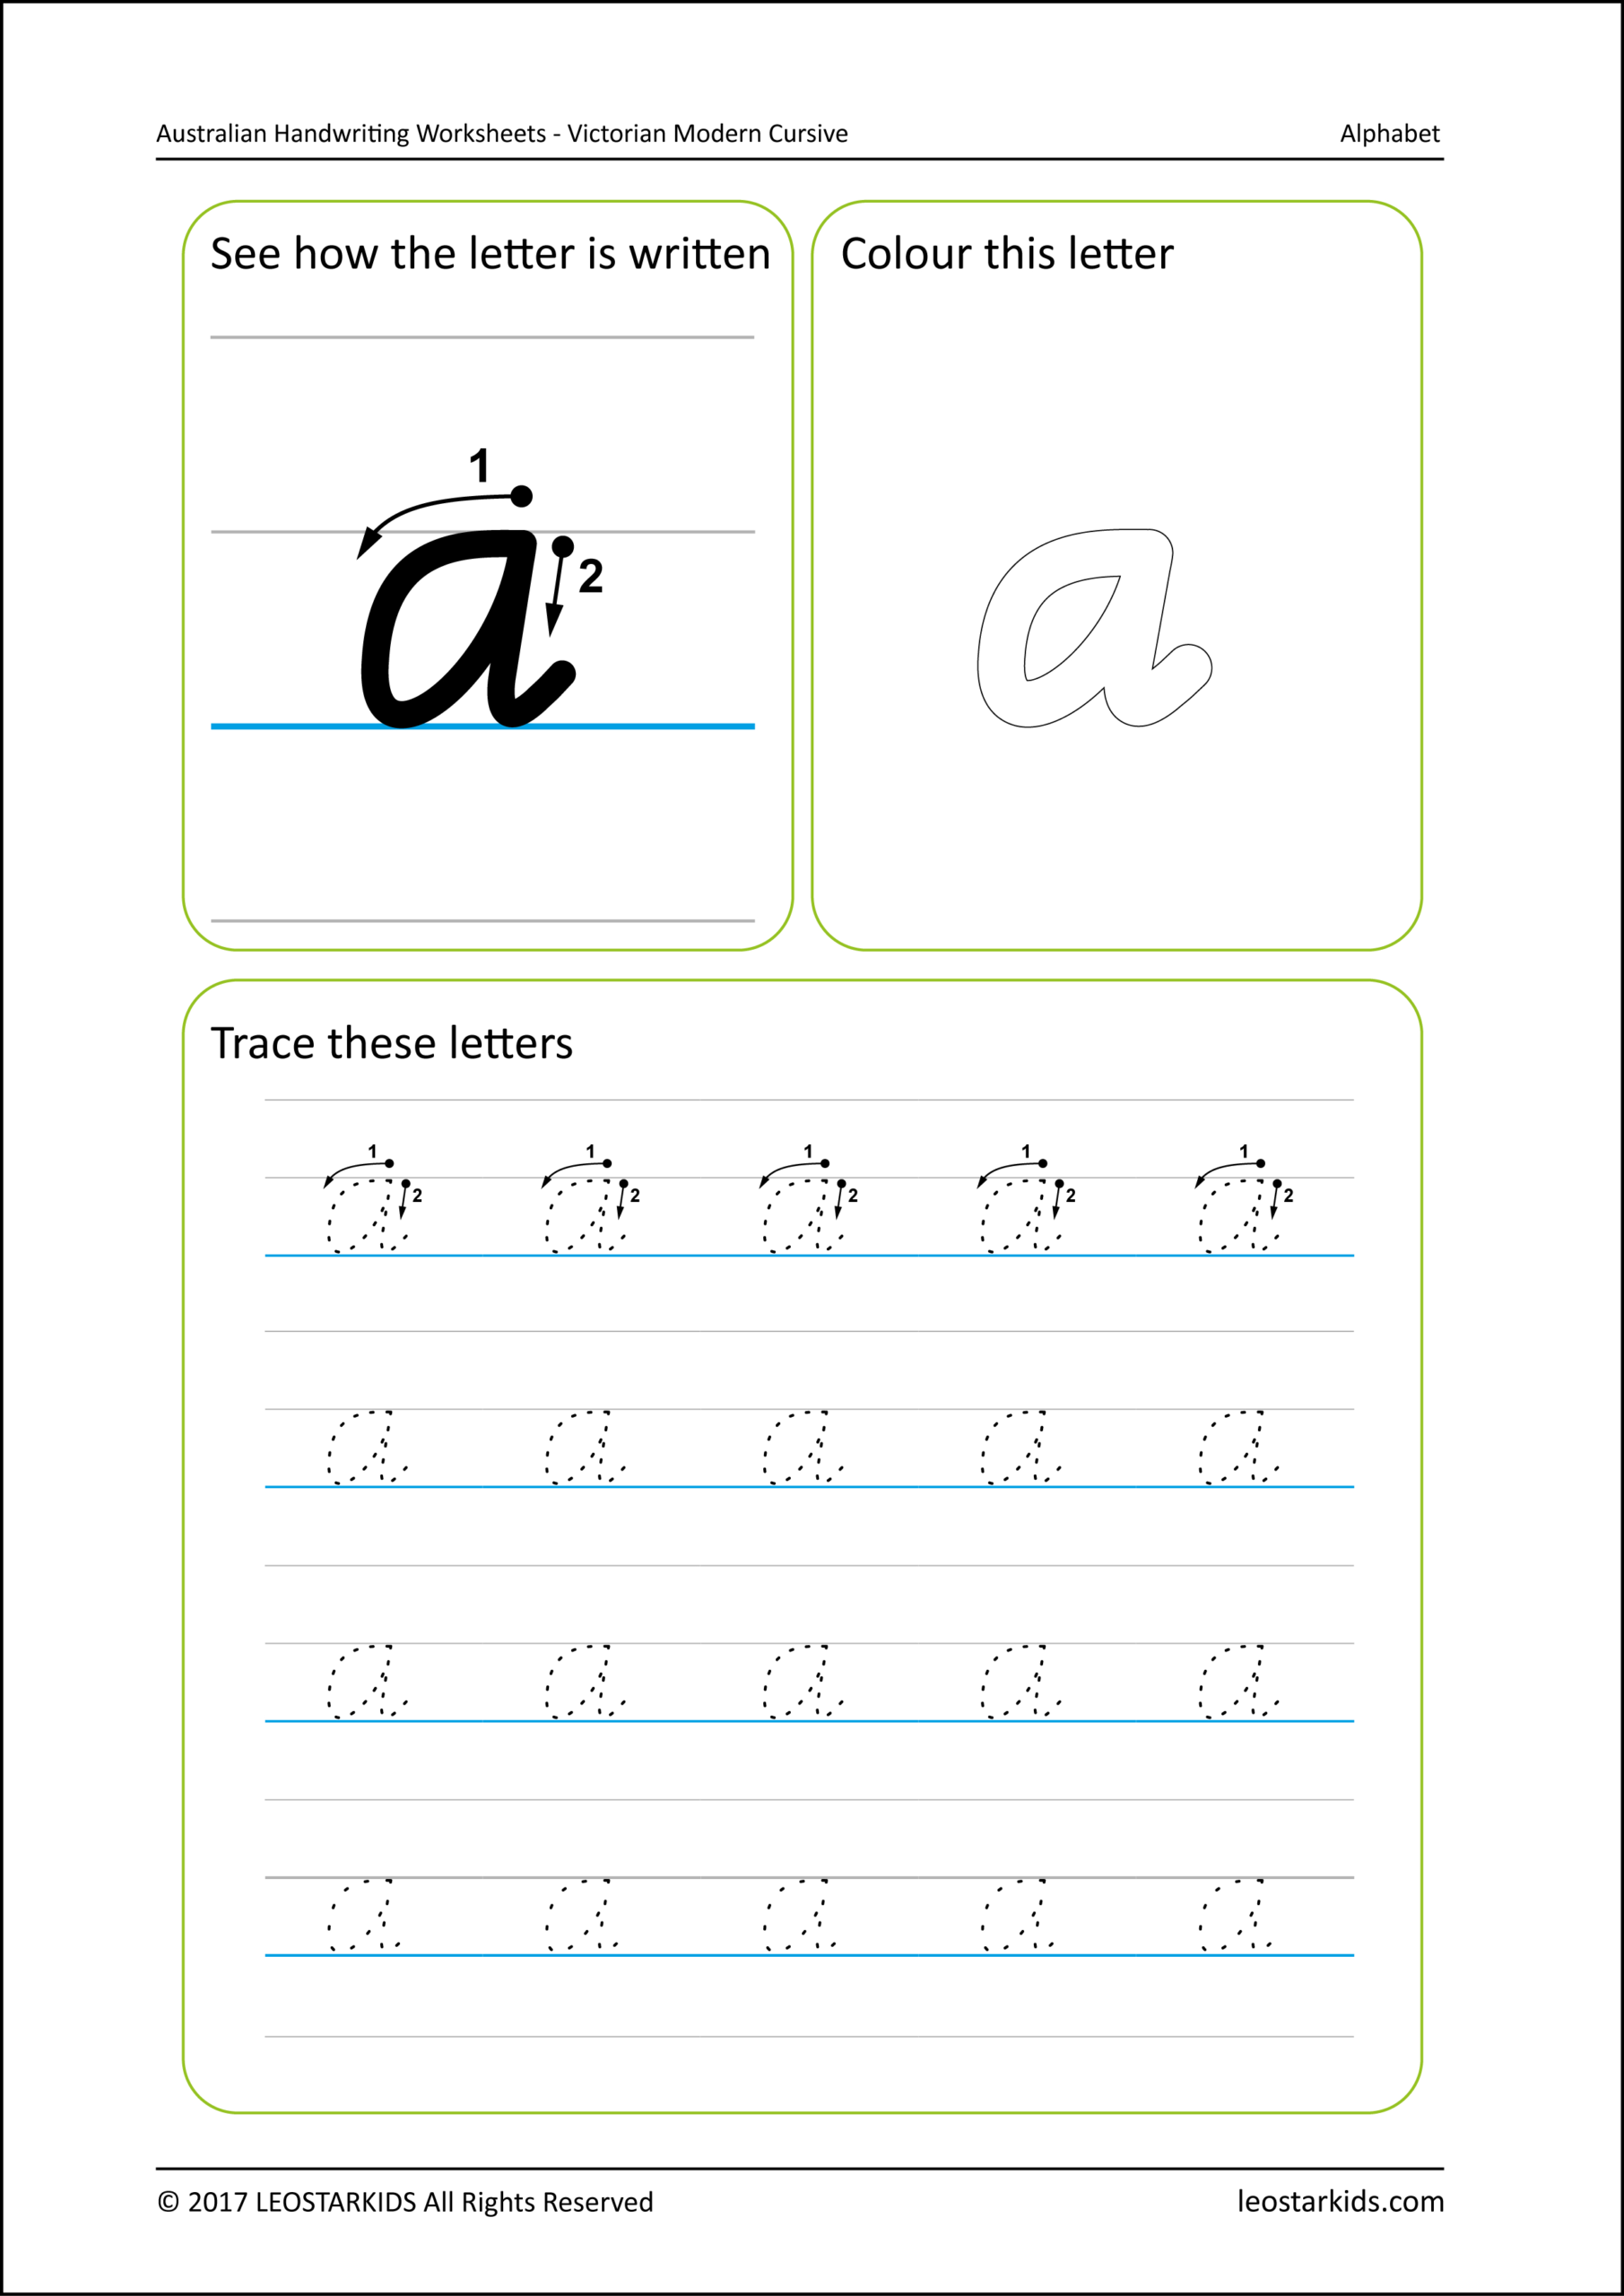 Australian Handwriting Worksheets - Victorian Modern Cursive with regard to Name Tracing Template Qld Font